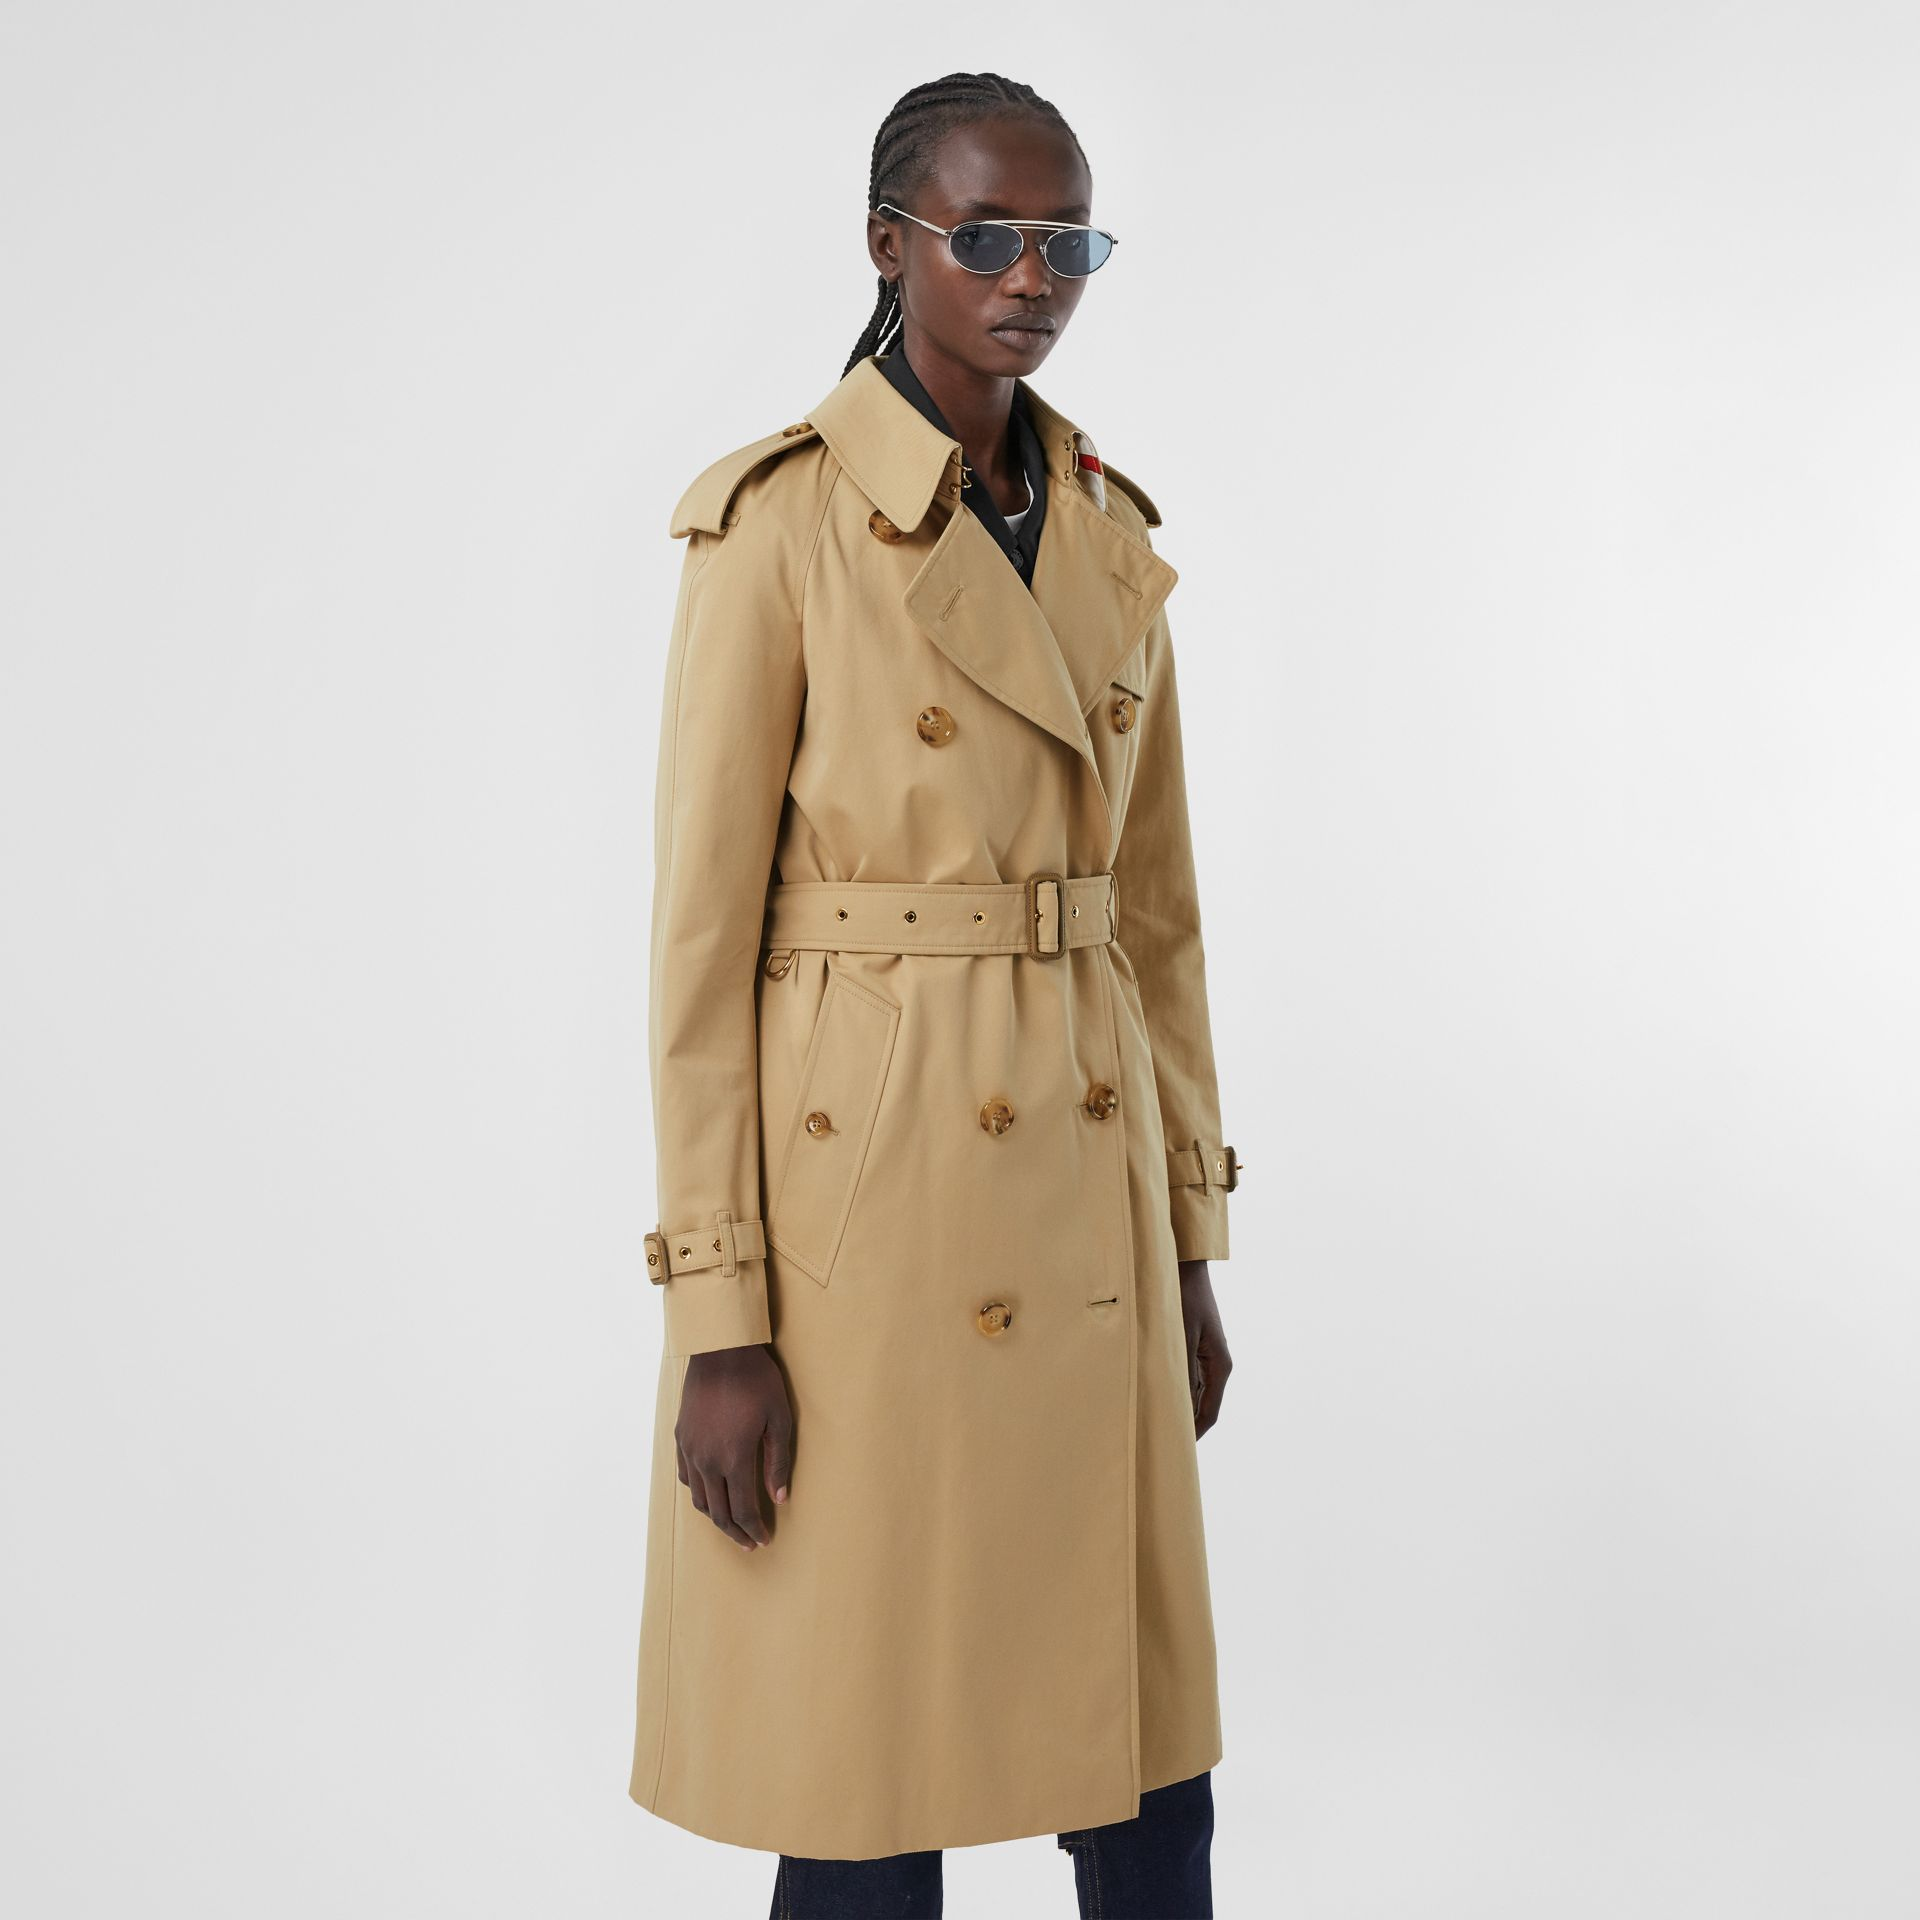 Archive Scarf Print-lined Trench Coat - Women | Burberry - gallery image 2